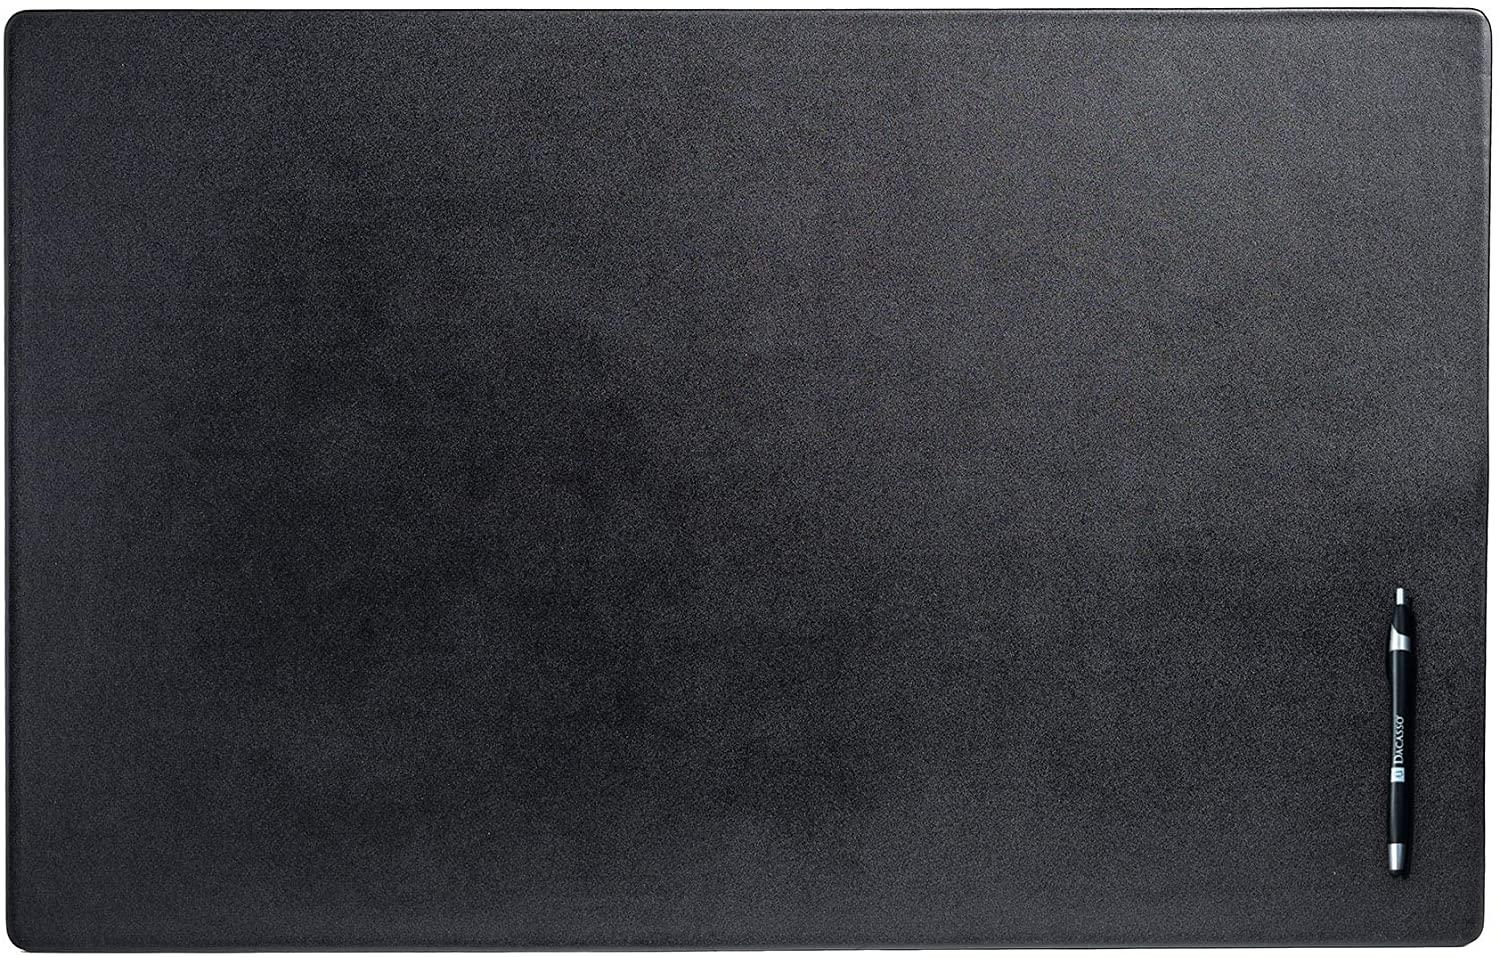 Dacasso Black Leather Desk Mat, 30-Inch by 19-Inch: Home & Kitchen